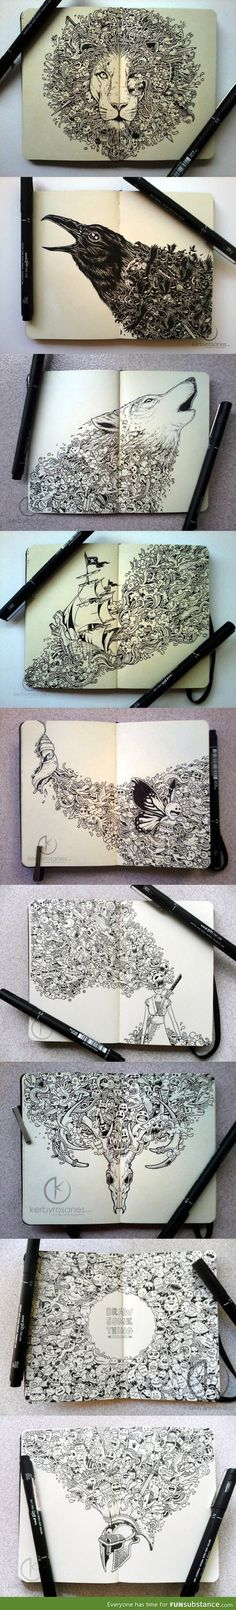 Incredible moleskine drawings